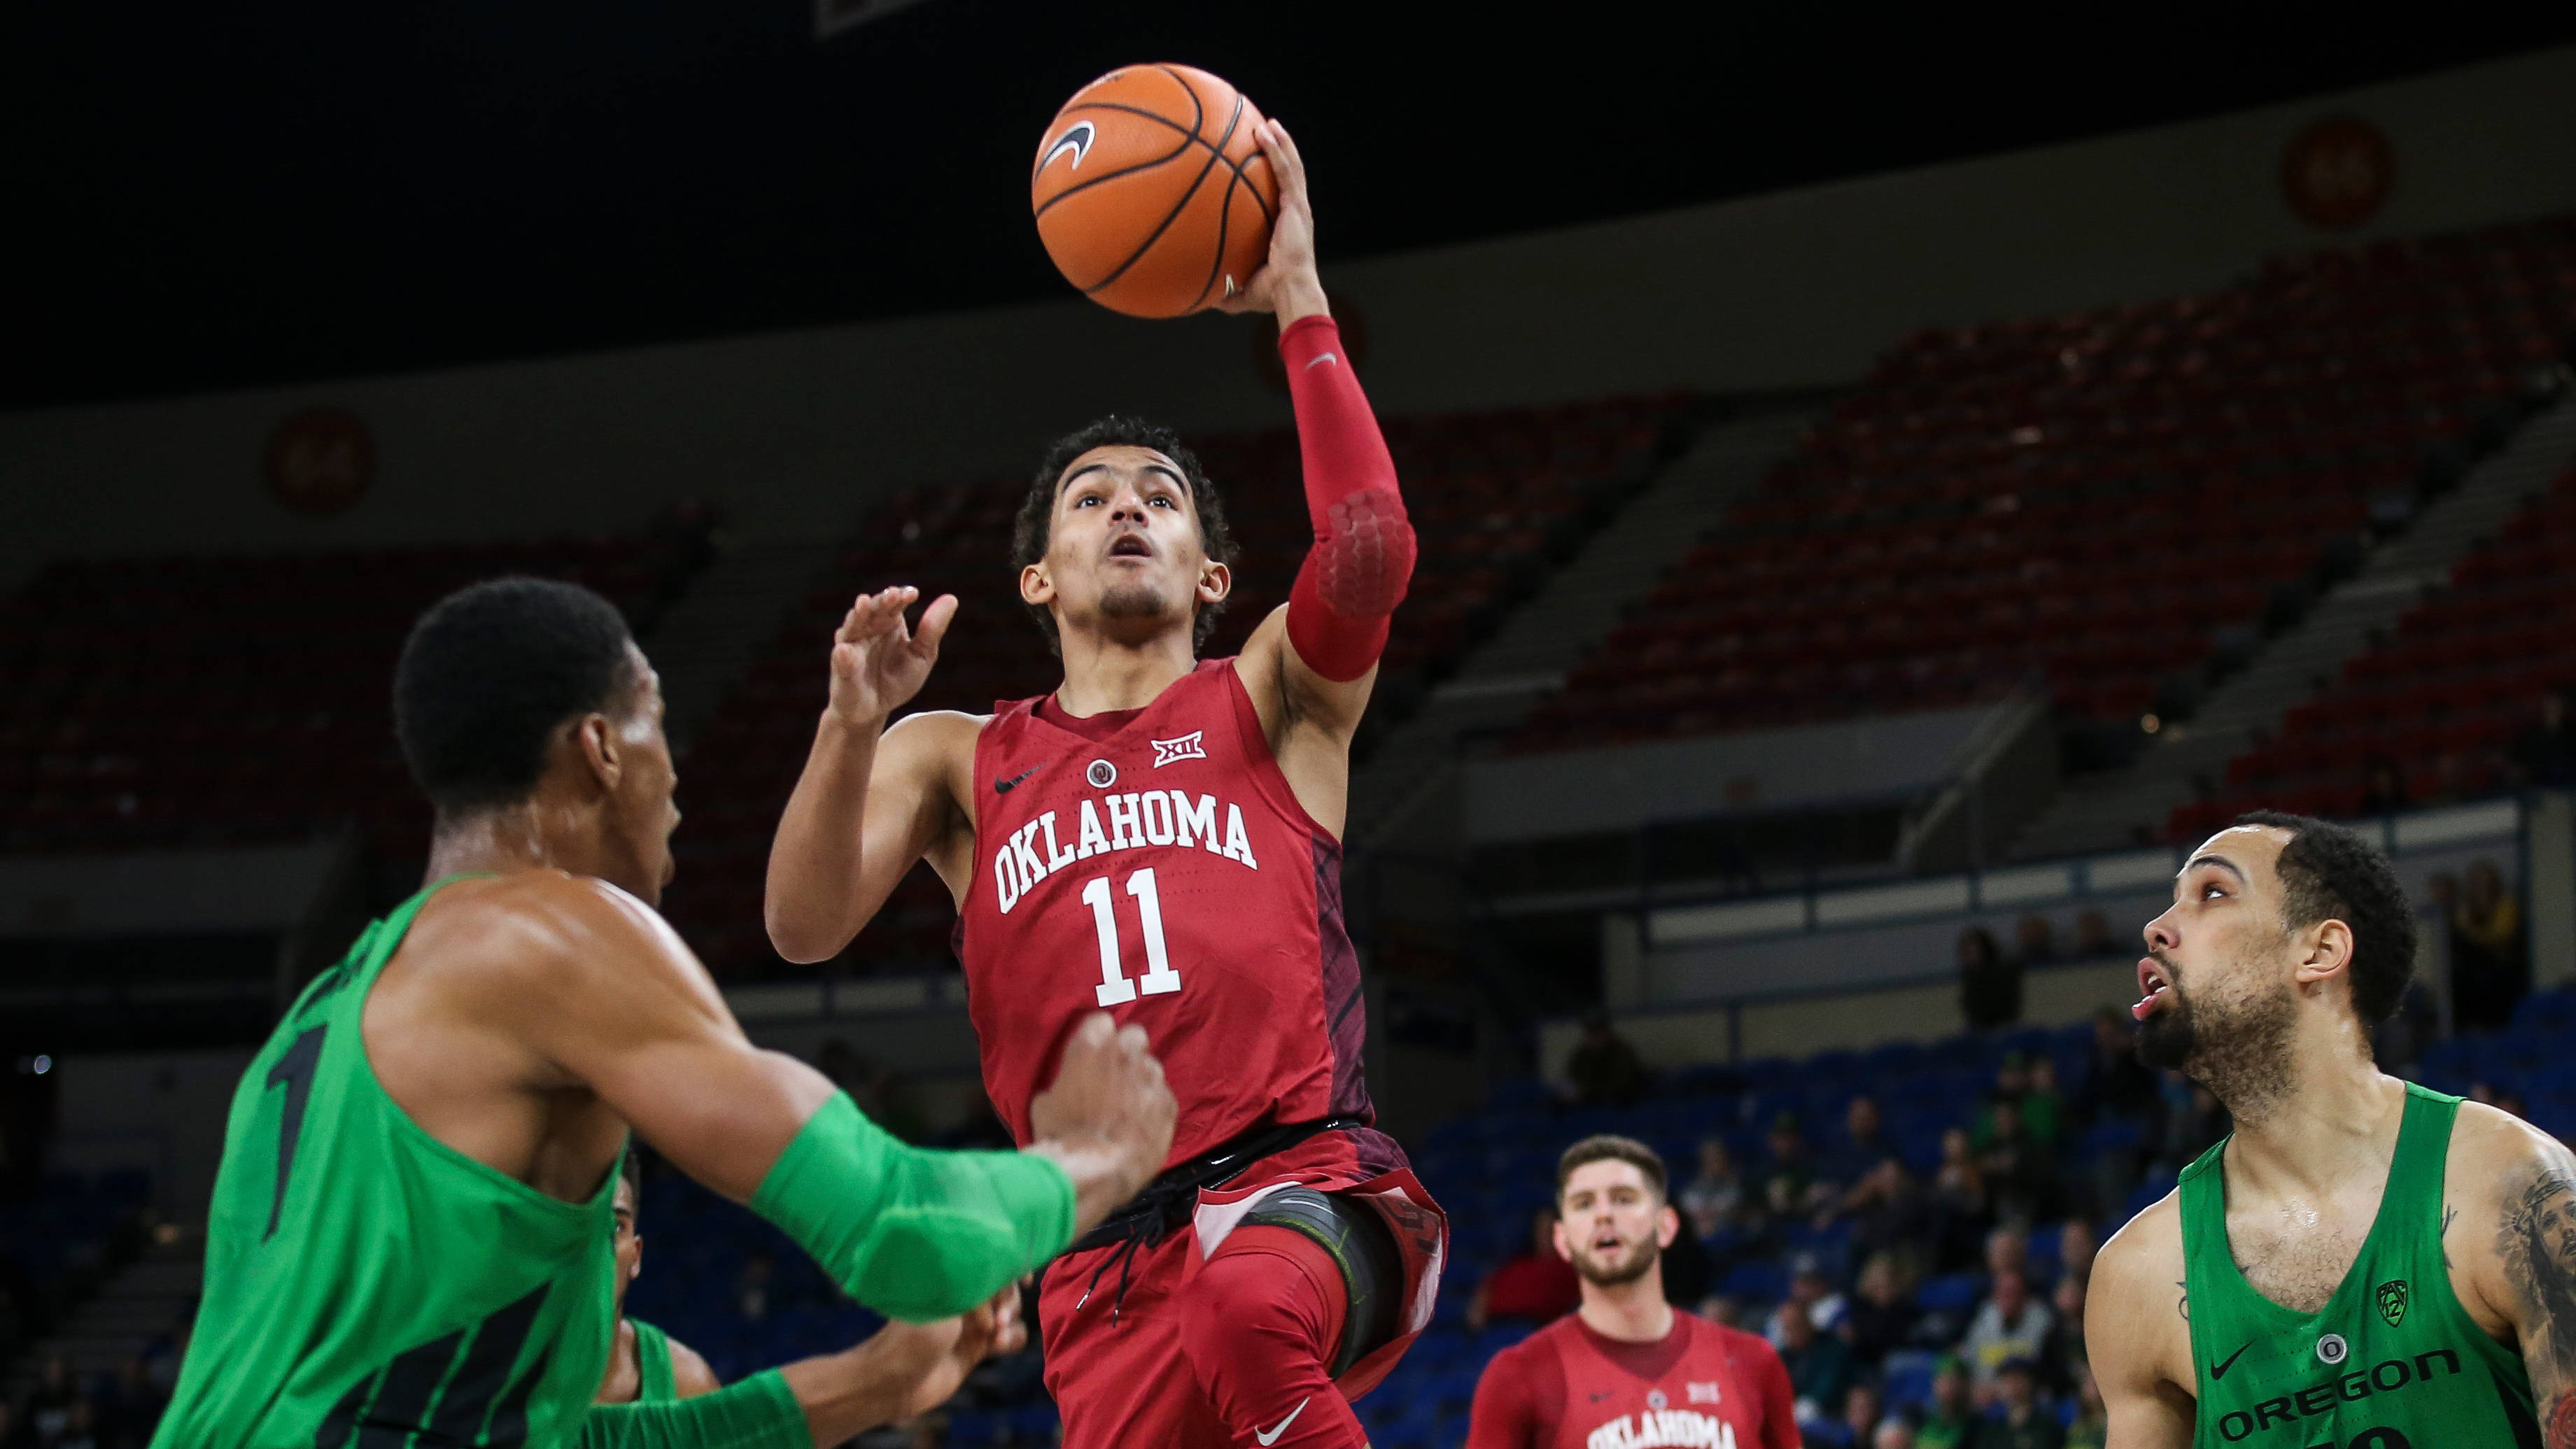 f60d5ed0f1b5 Trae Young  Hometown Hero - Student Union